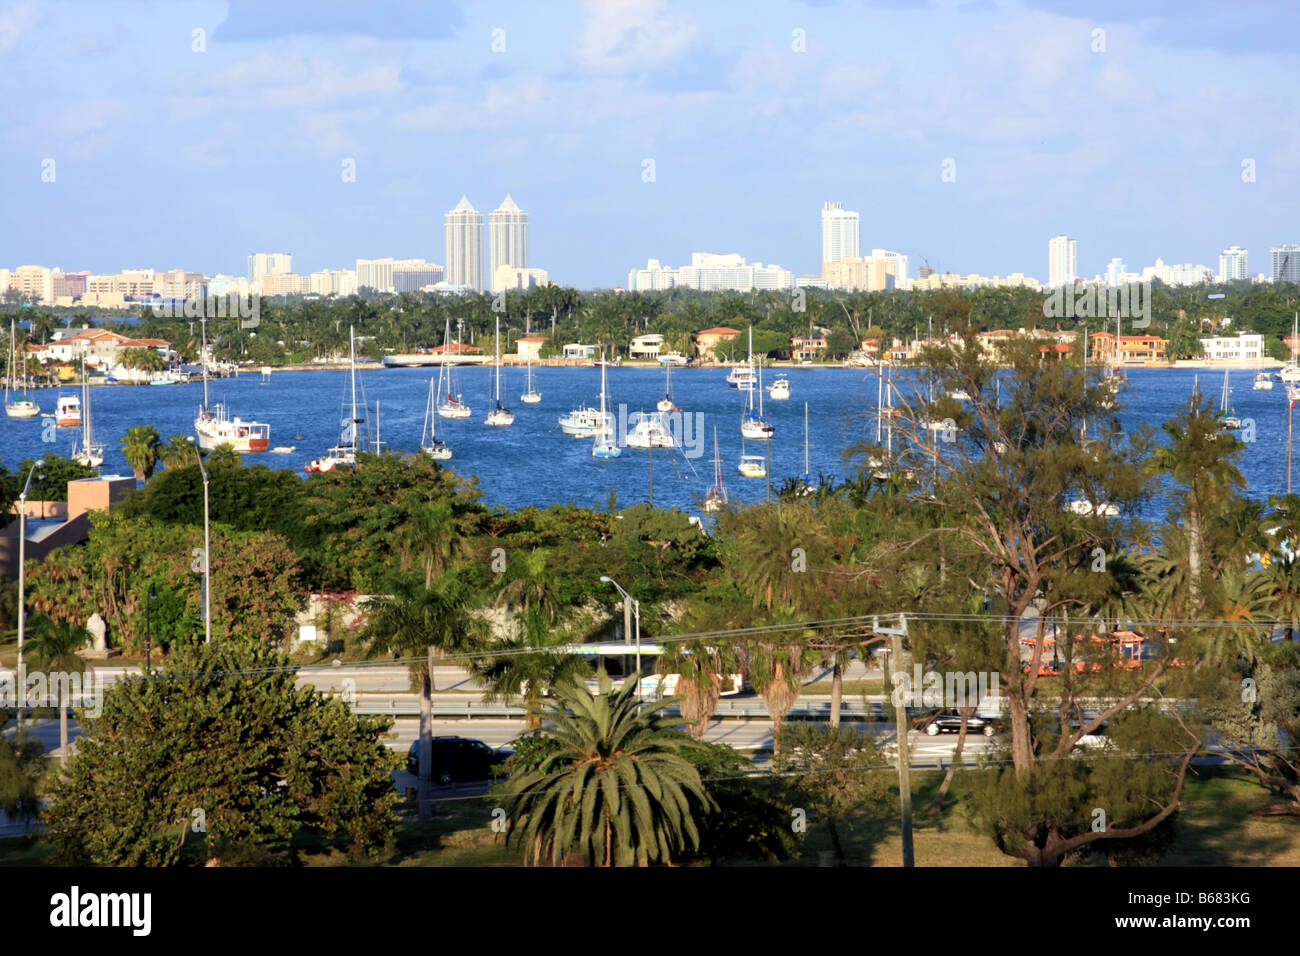 Sailboats in the bay in Miami. - Stock Image